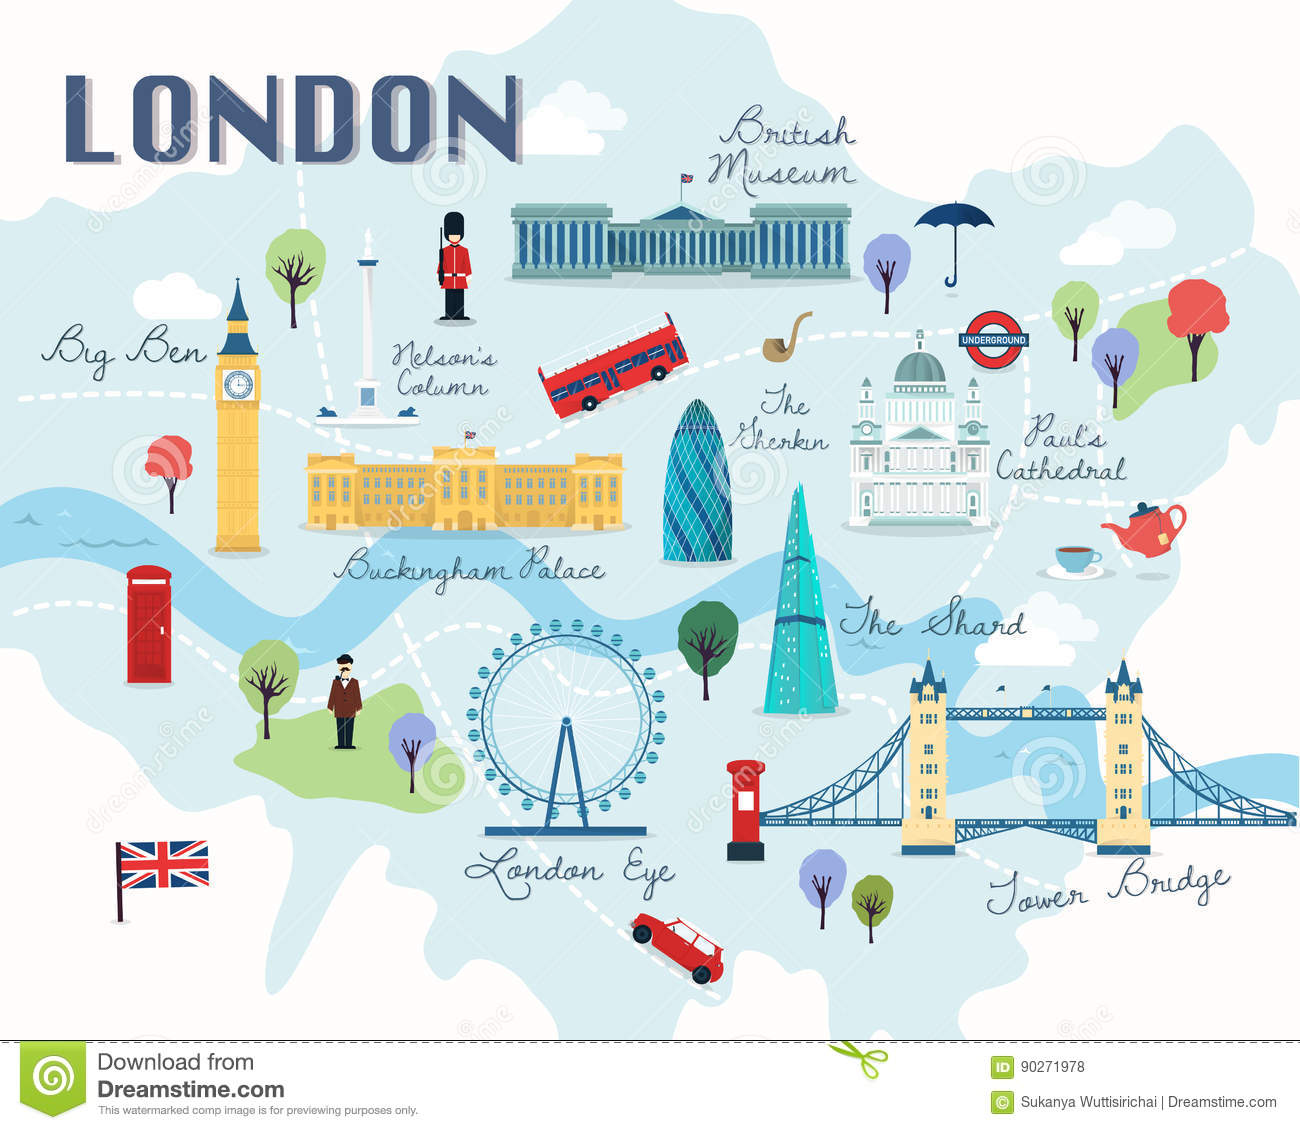 London Map Attractions.Map Of London Attractions Vector And Illustration Stock